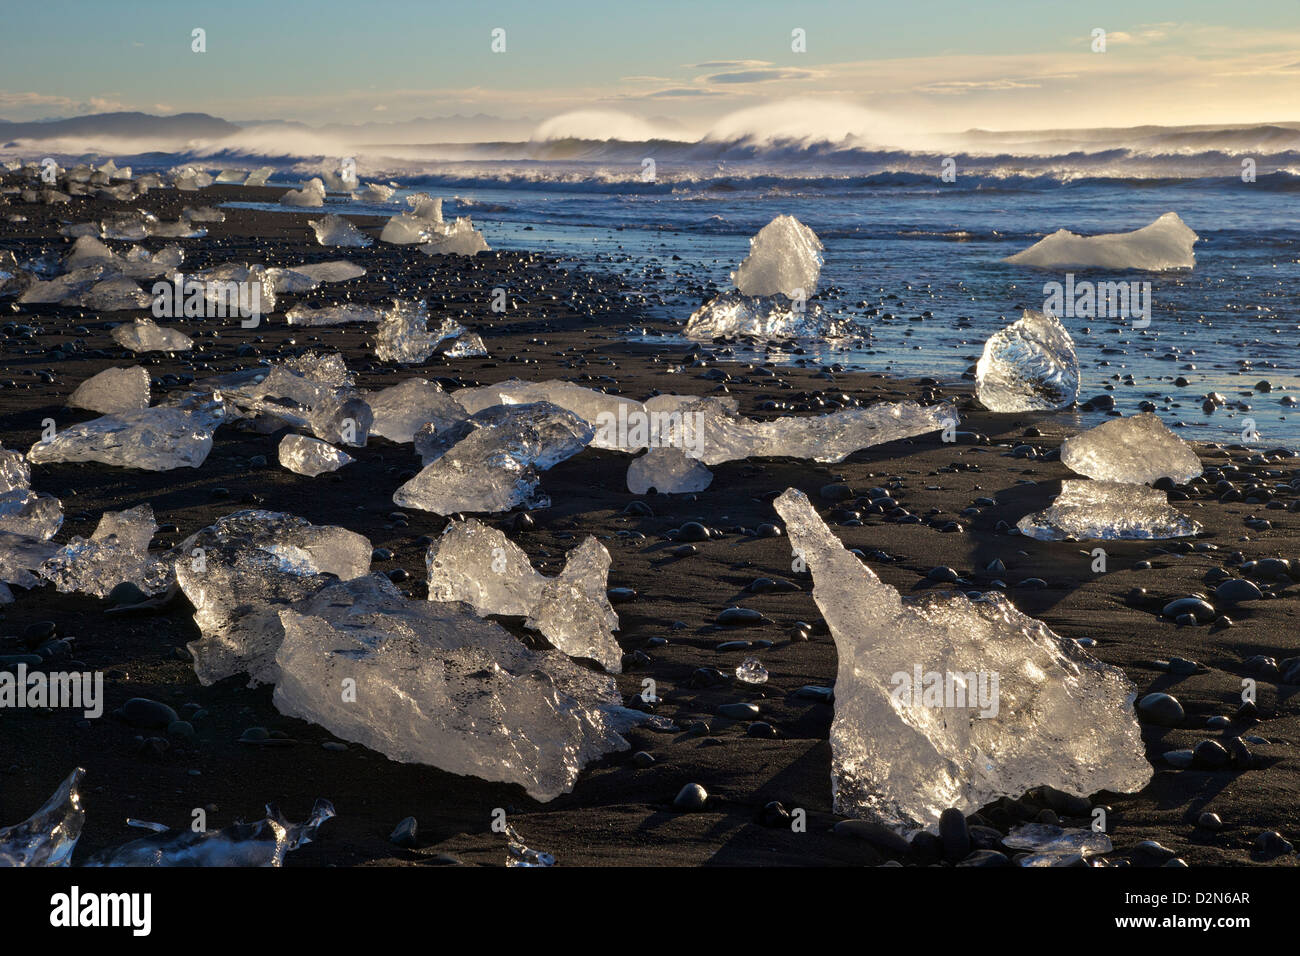 Icebergs on volcanic sand beach at Jokulsarlon, Iceland, Polar Regions - Stock Image